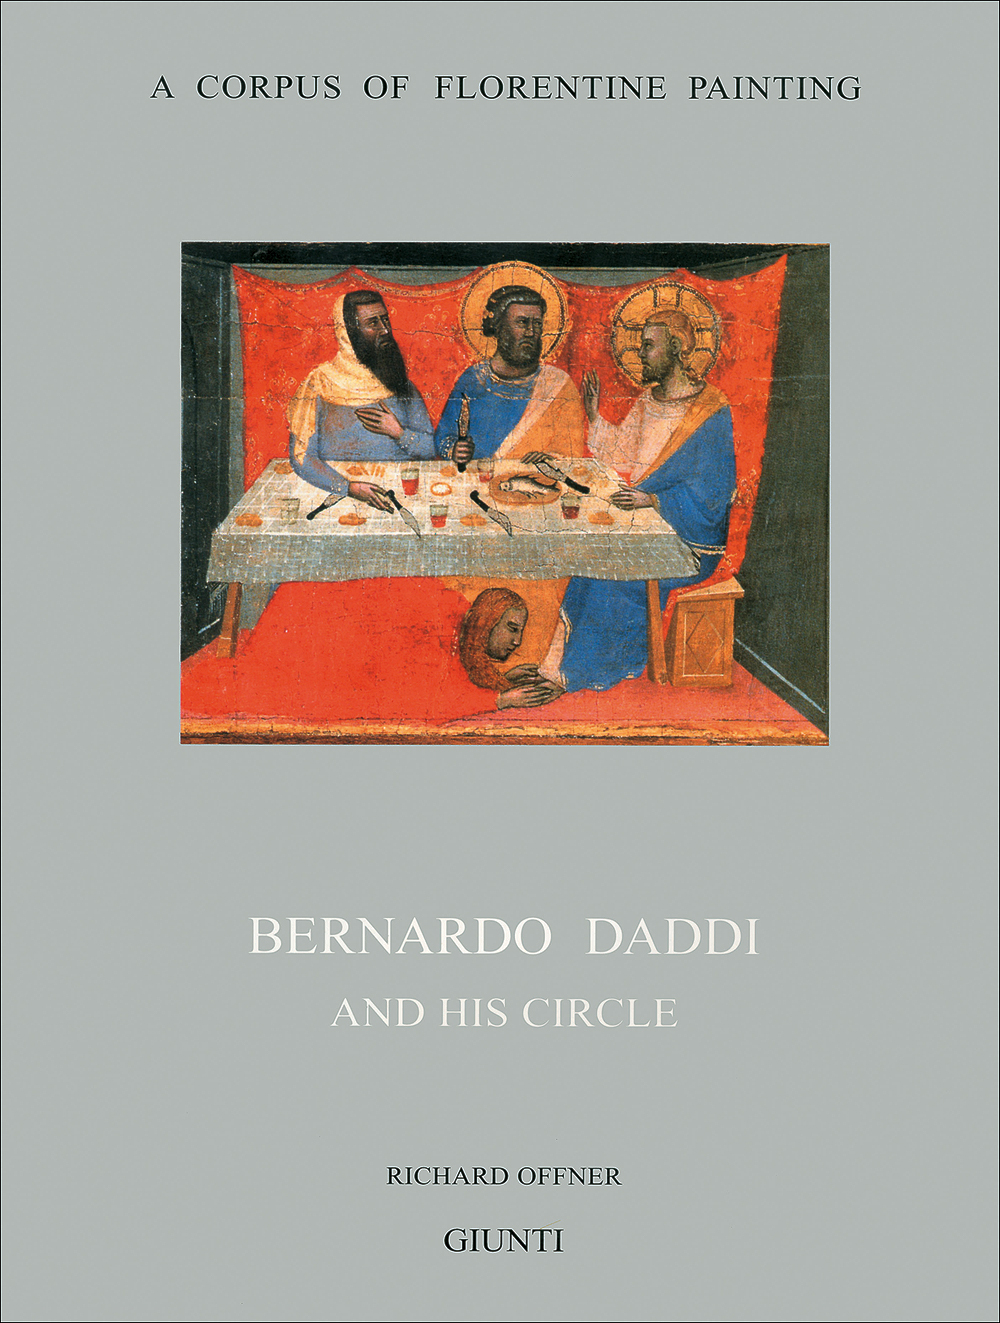 Bernardo Daddi and his circle